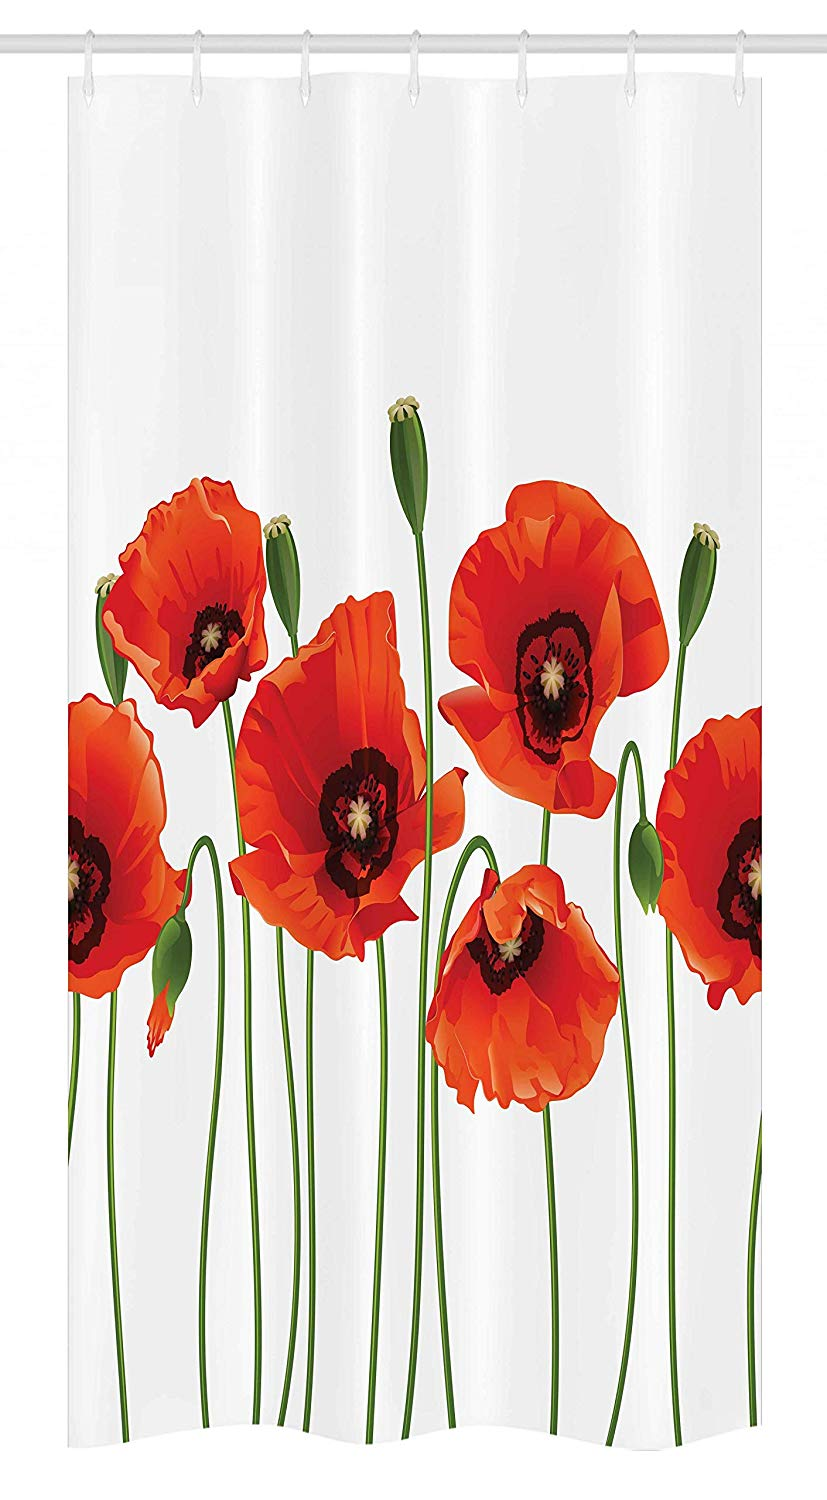 Ambesonne Floral Stall Shower Curtain, Poppies of Spring Season Pastoral Flowers Botany Bouquet Field Nature Theme Art, Fabric Bathroom Decor Set with Hooks, 36 W x 72 L Inches, Red and Green